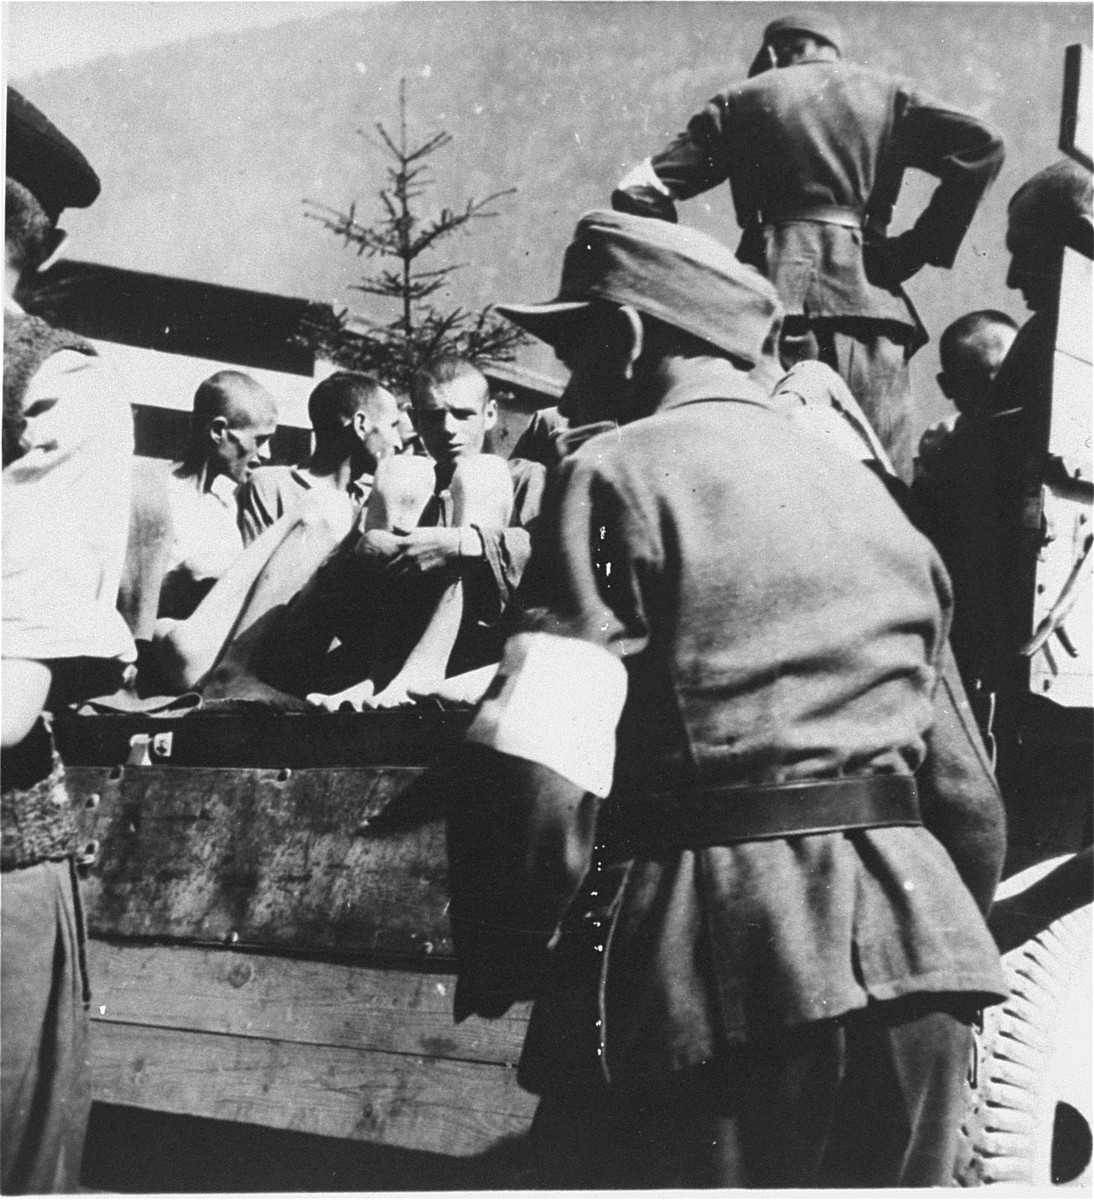 German soldiers assist in evacuating survivors from Ebensee to the 139th Evacuation Hospital for medical care after liberation.